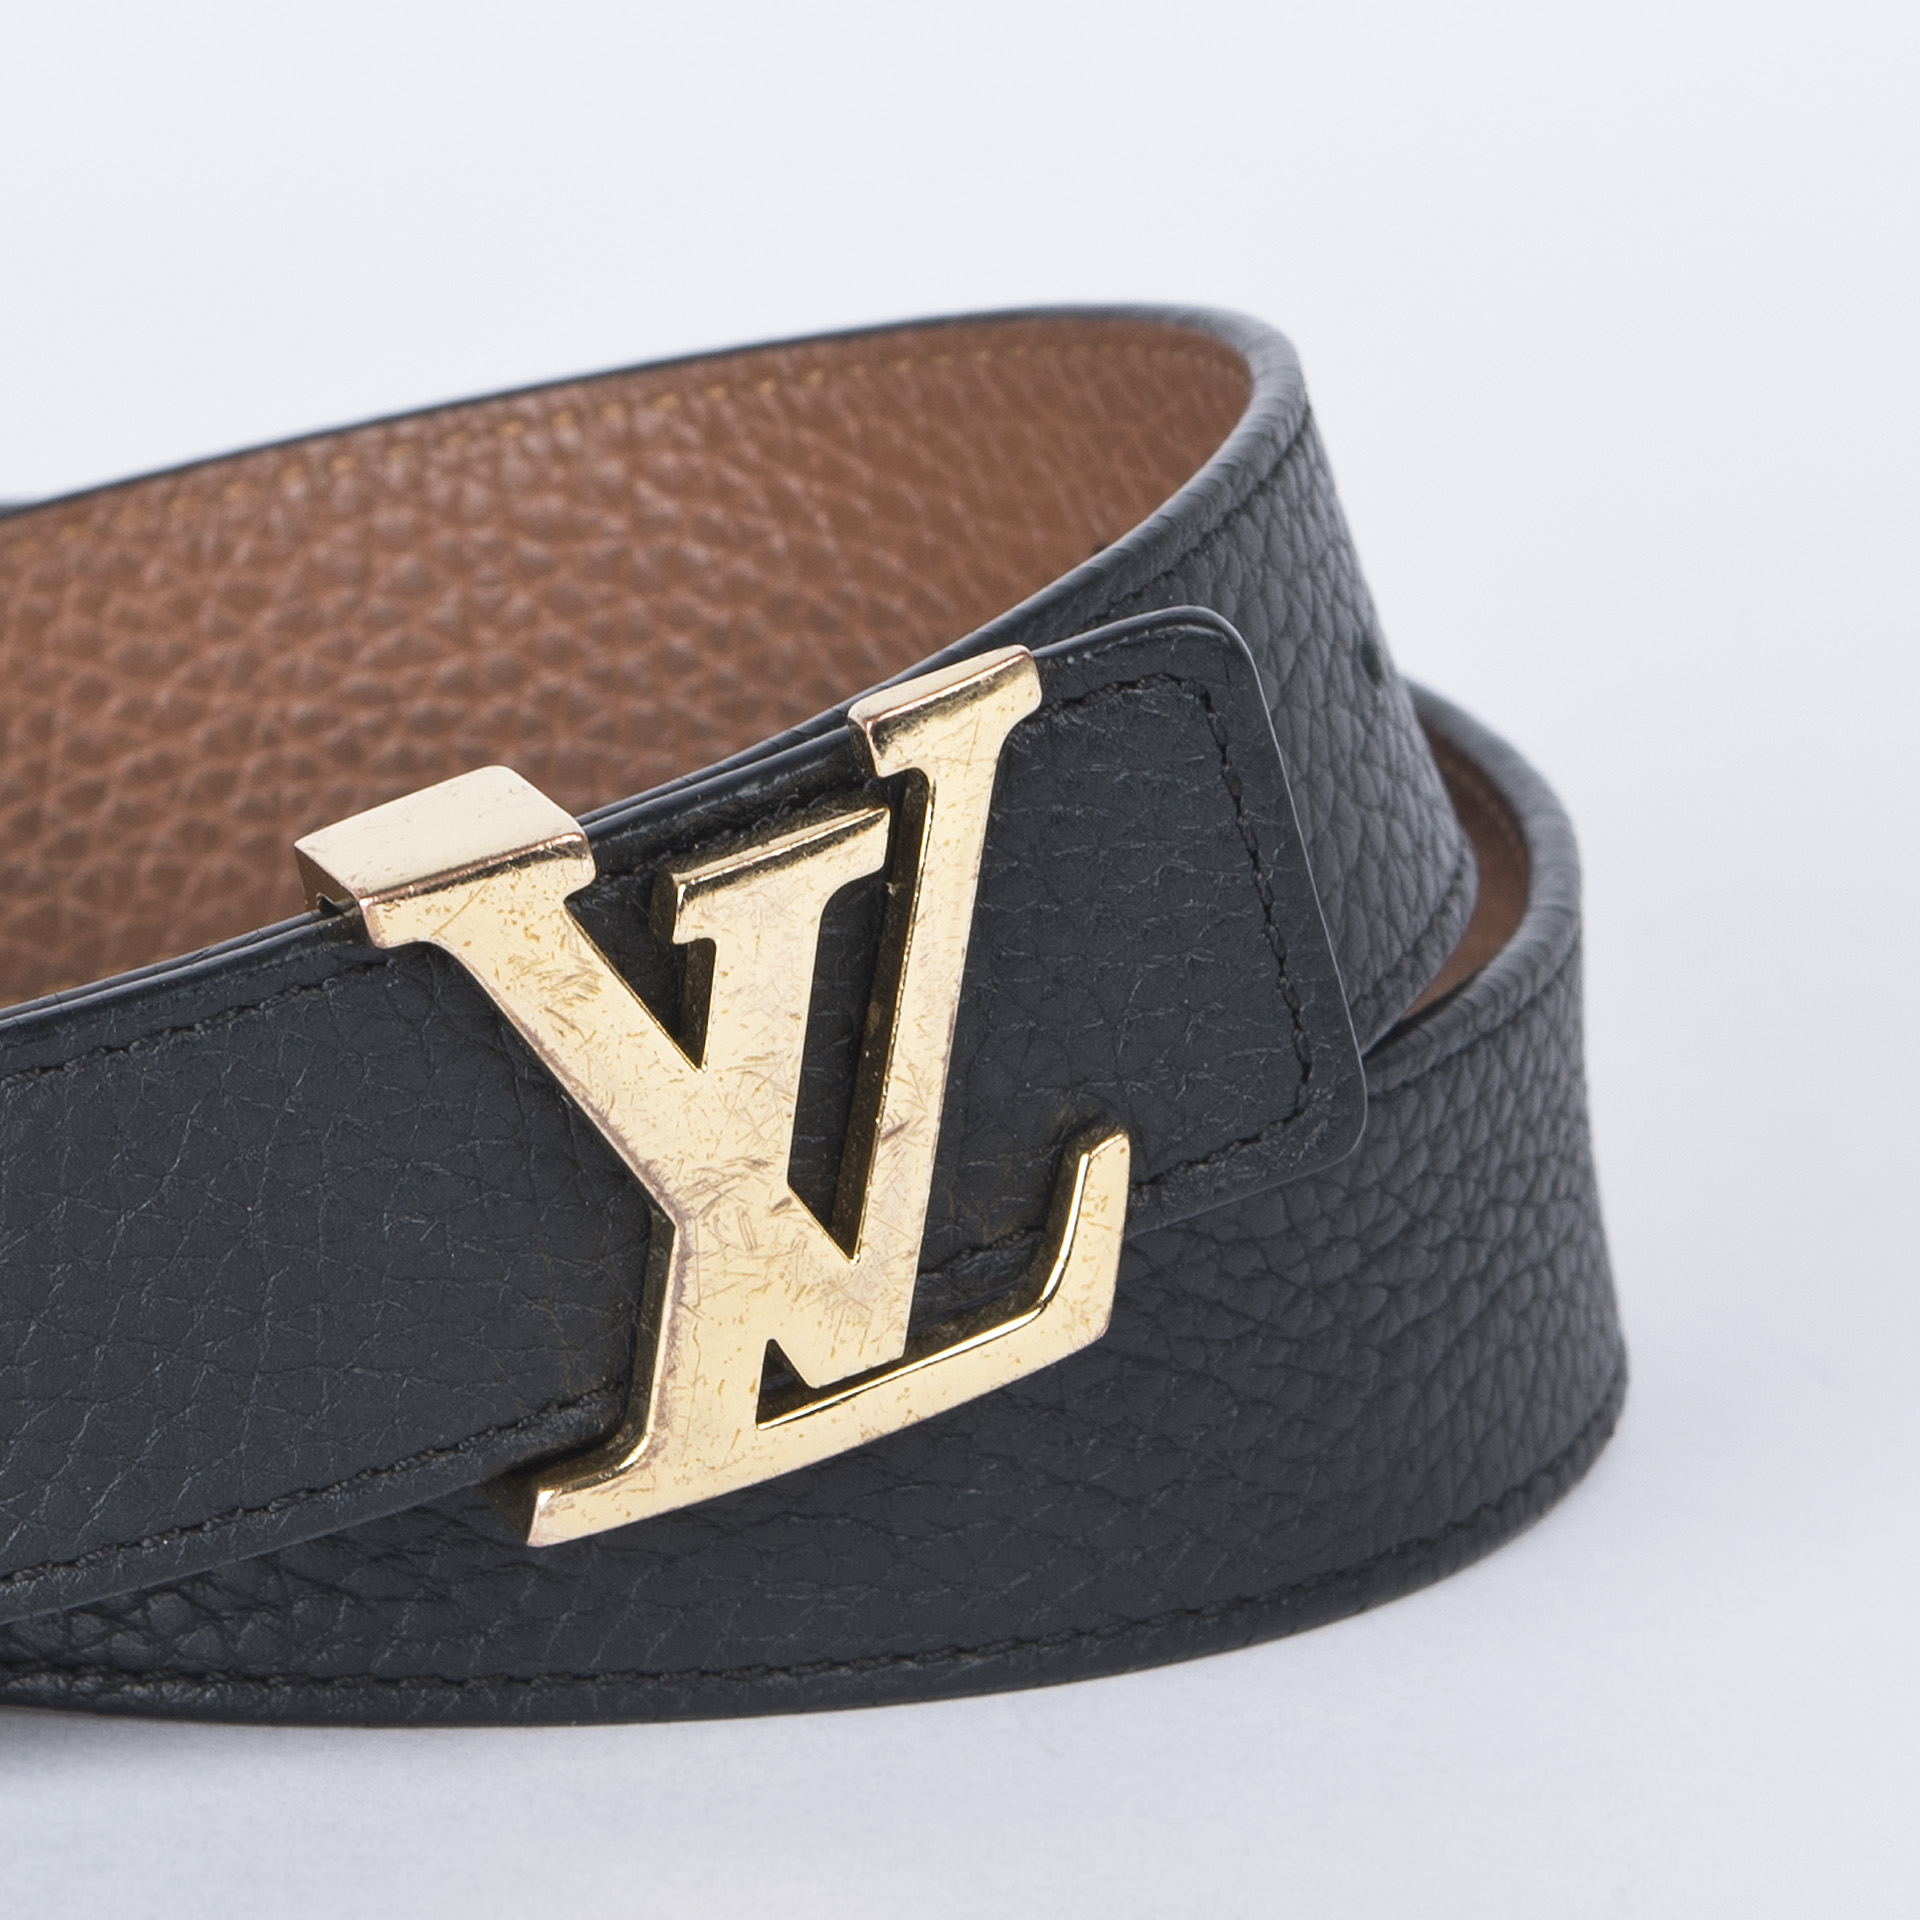 f8160bc38584 Louis Vuitton Initiales Reversible 30 Mm Belt - LOUIS VUITTON Initiales  Reversible 30 mm Belt i